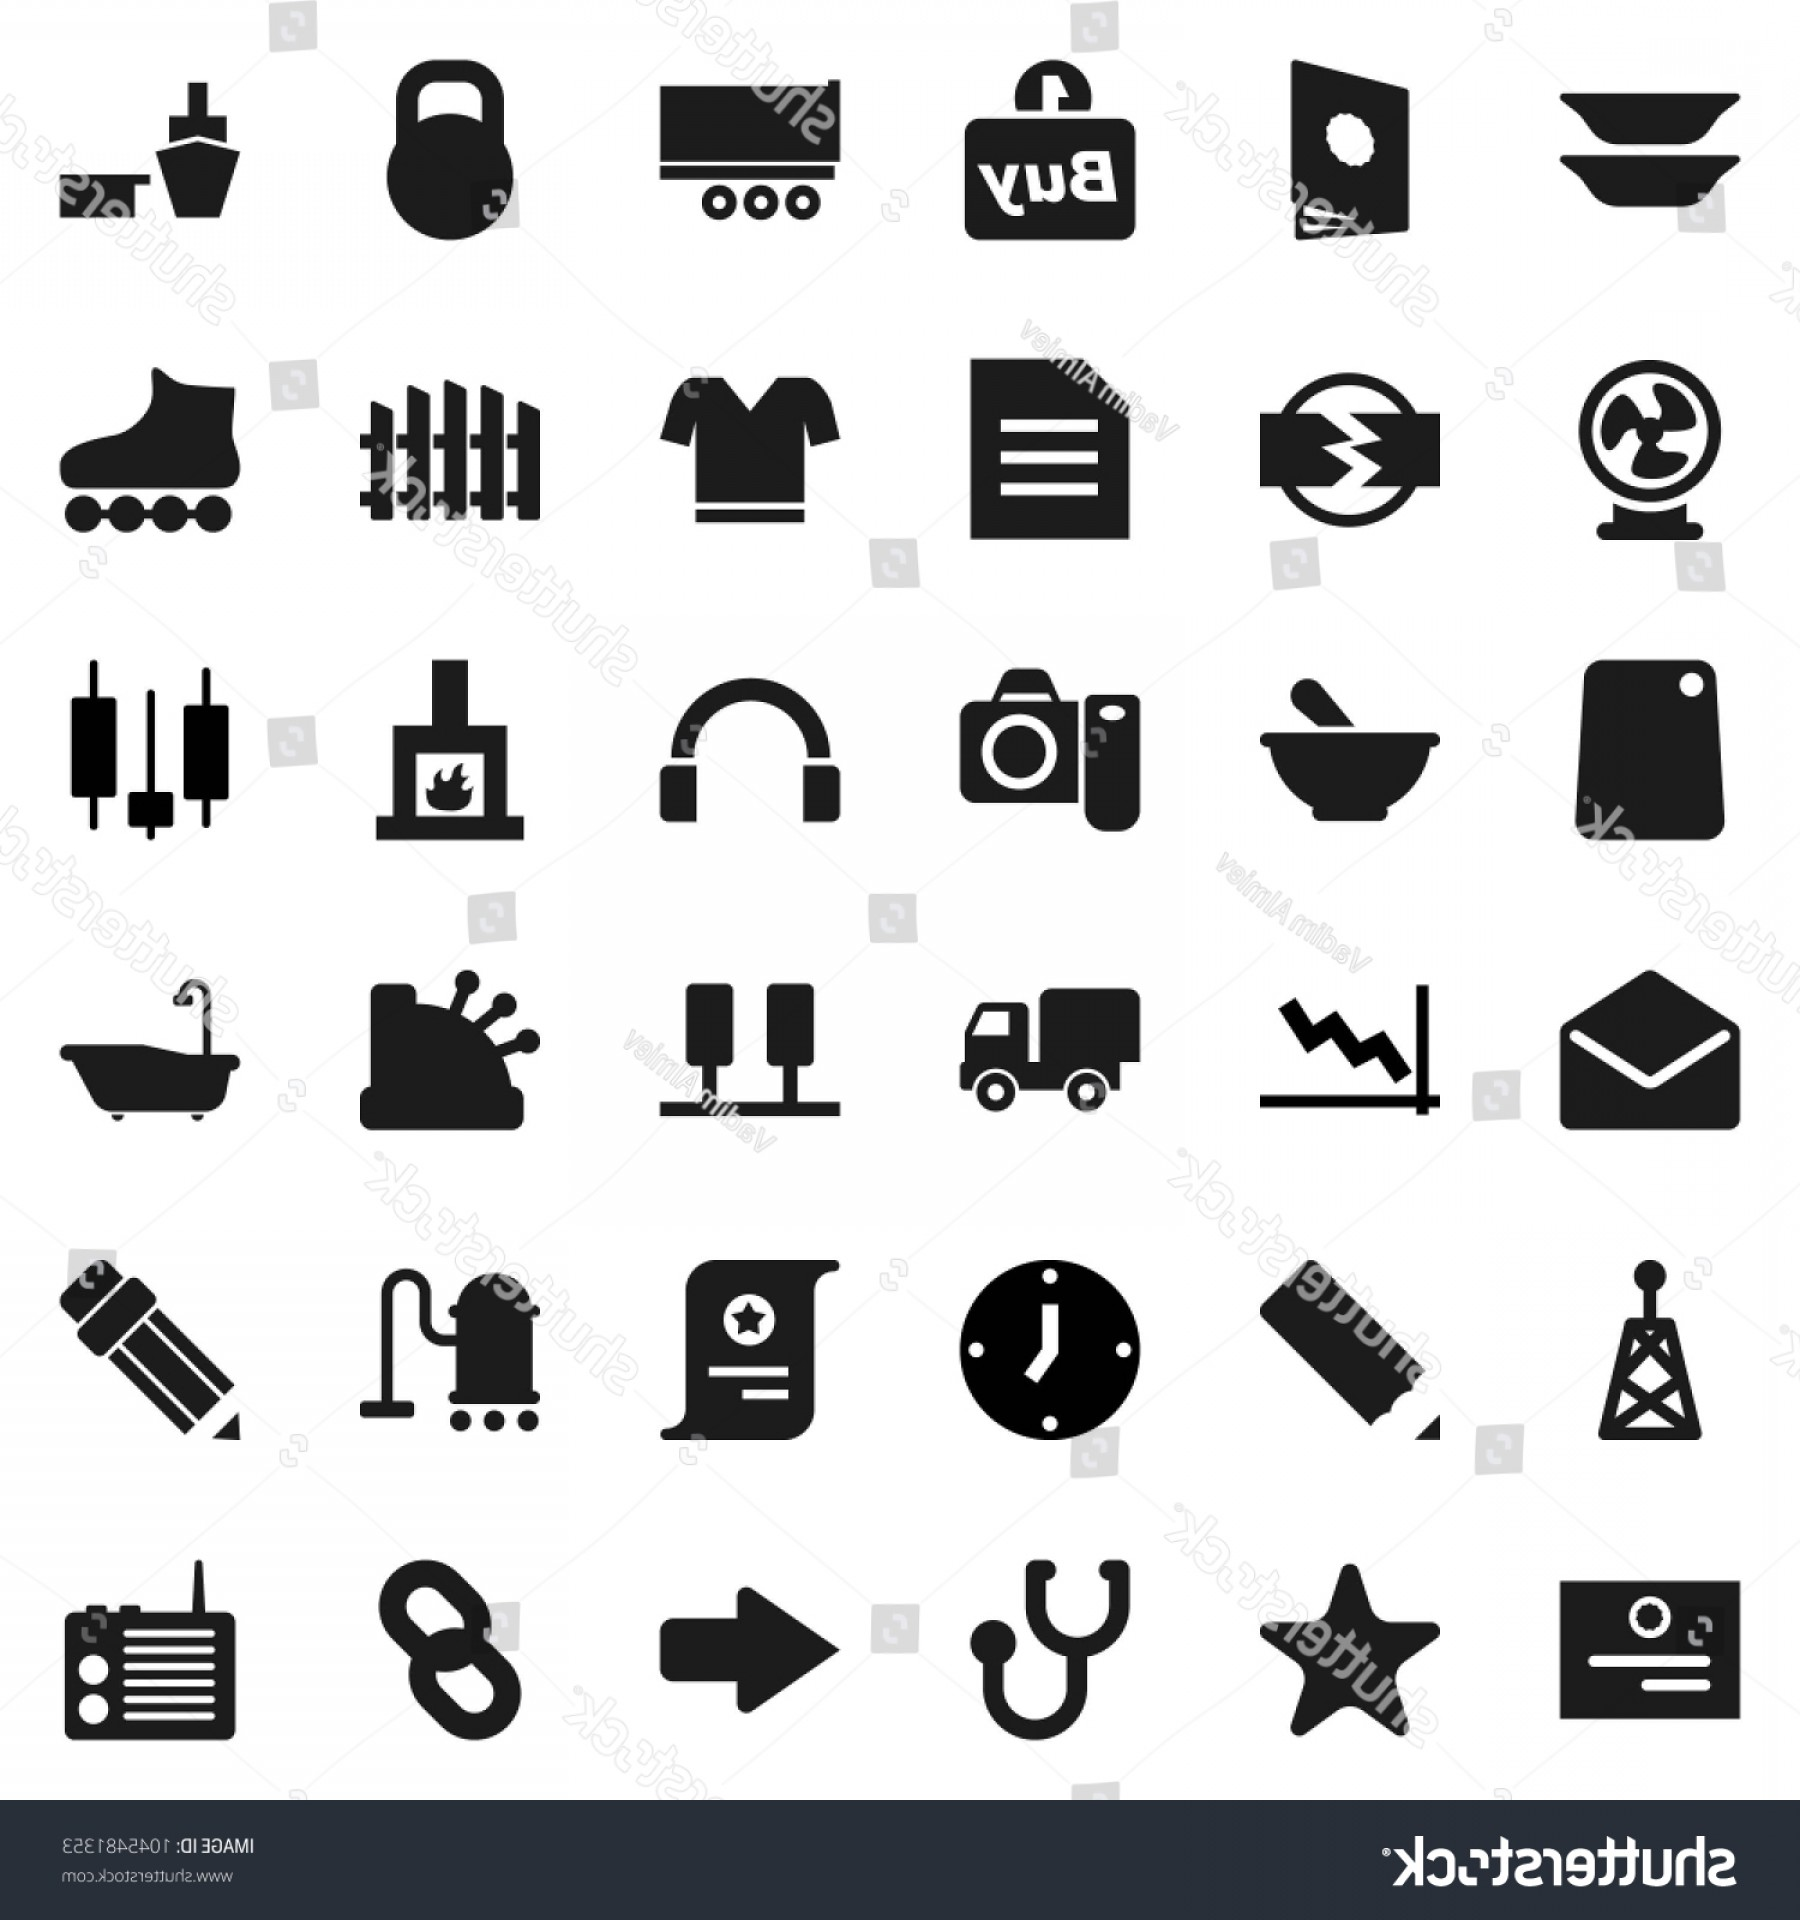 Vector Vacuum Trailer: Flat Vector Icon Set Vacuum Cleaner